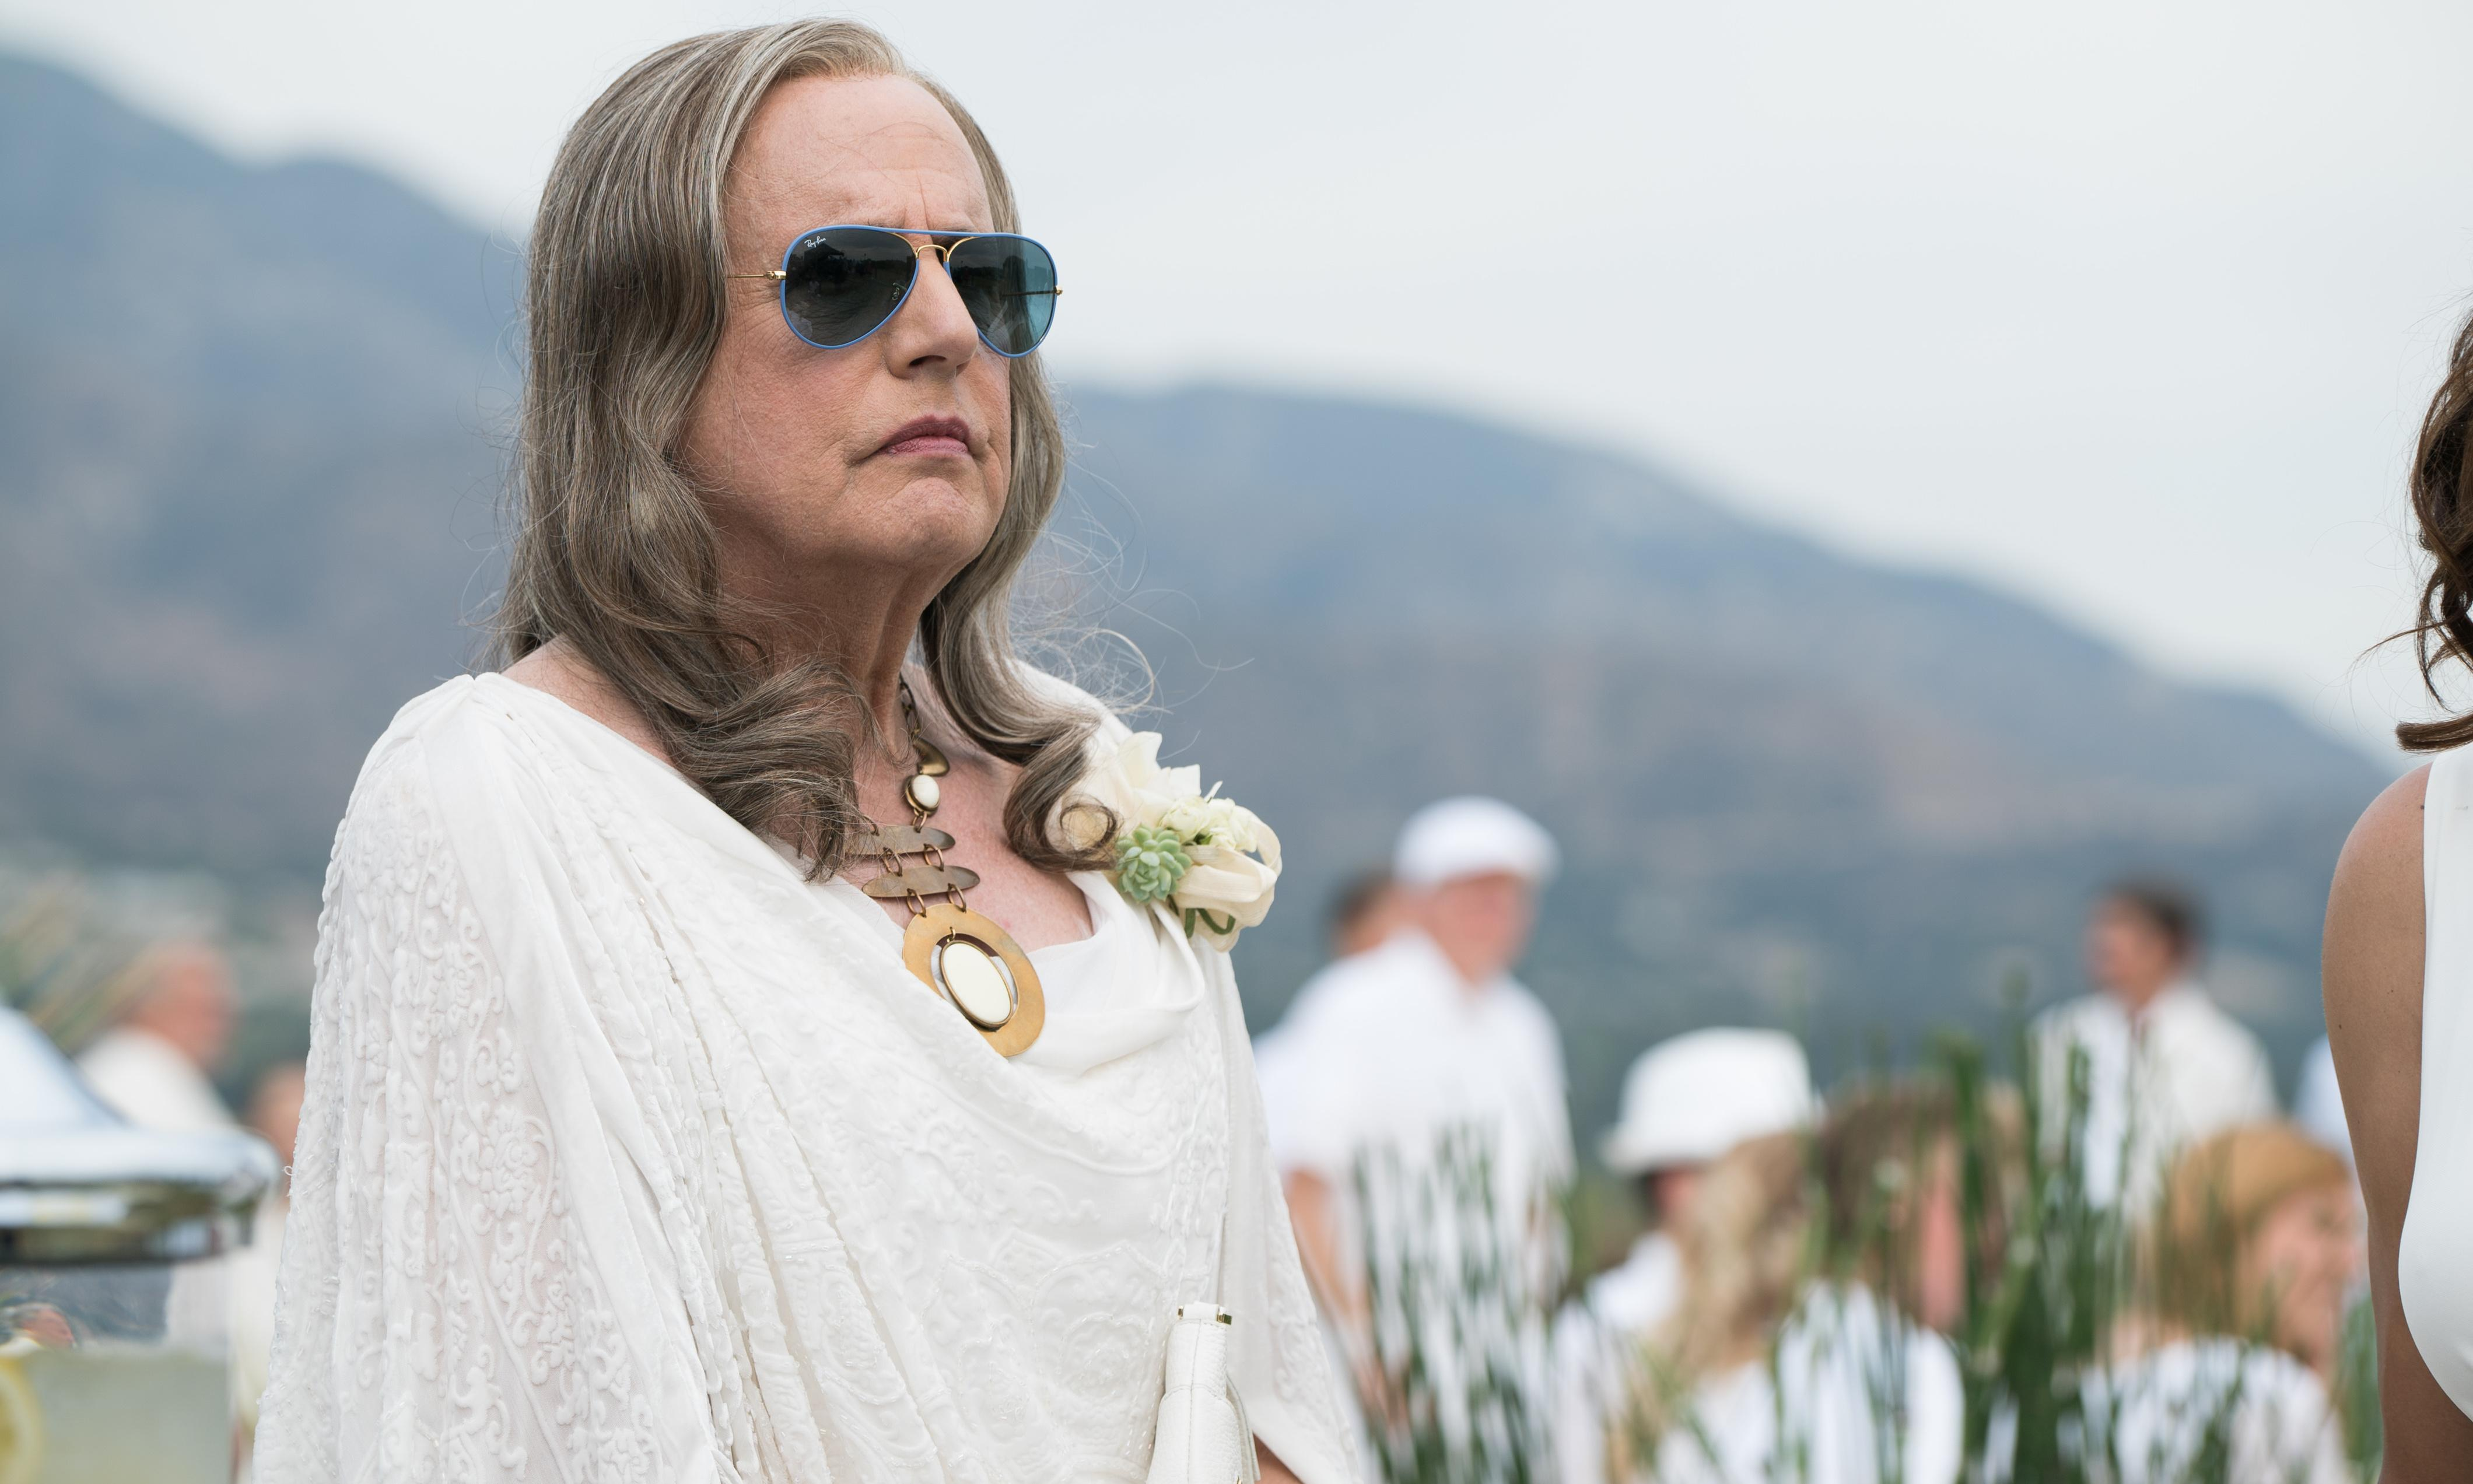 Jeffrey Tambor's character to be killed off in musical Transparent finale